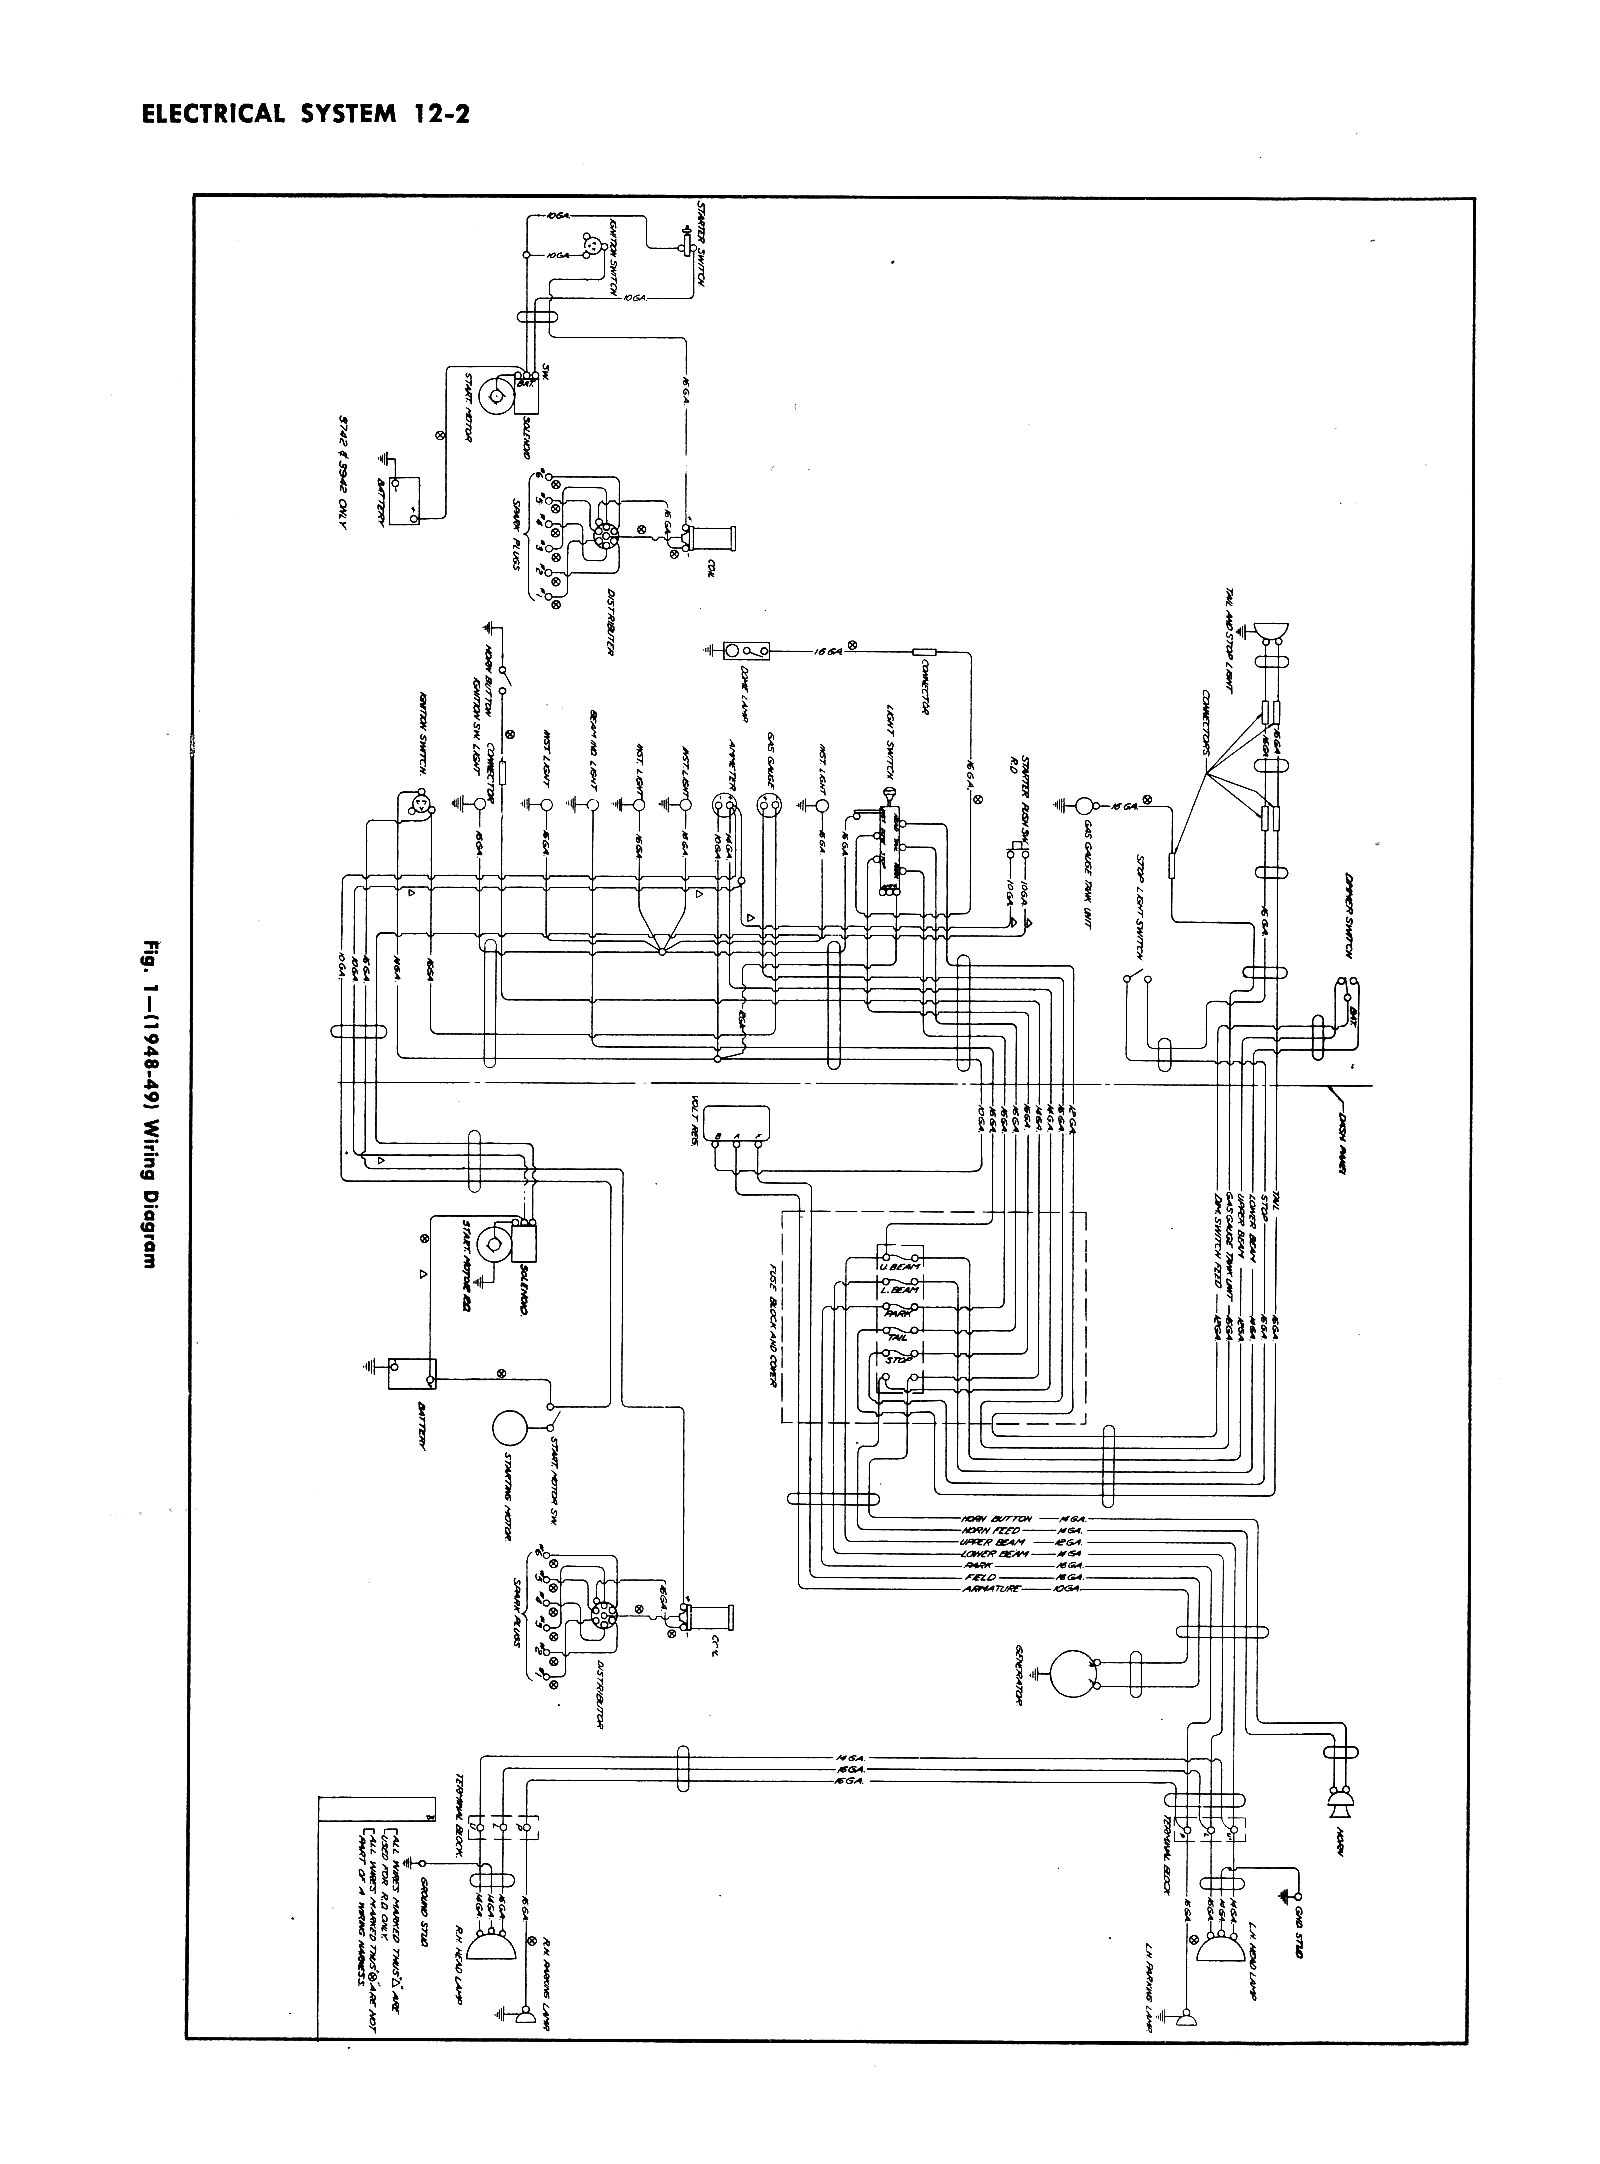 79 Chevy Truck Wiring Diagram likewise 1947 Crosley Car Wiring Diagram besides 6 Volt To 12 Volt On Wire Conversion Wiring Diagram furthermore 1952 Ford Pickup Wiring Diagram besides 1987 Chevy Caprice Fuse Box Diagram Wiring Schematic. on 1949 plymouth wiring diagram battery